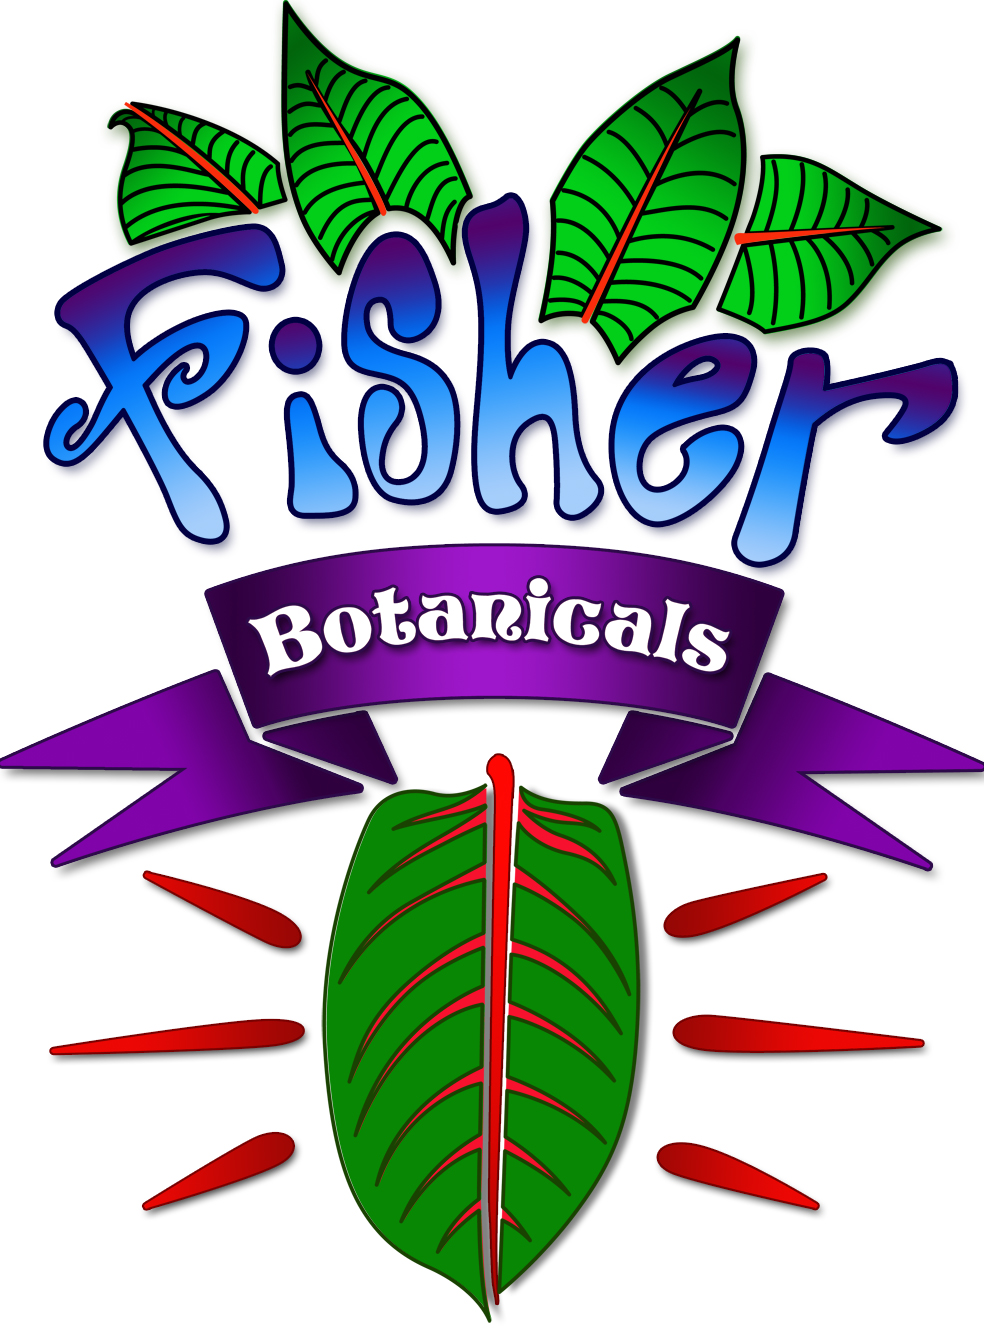 Fisher Botanicals